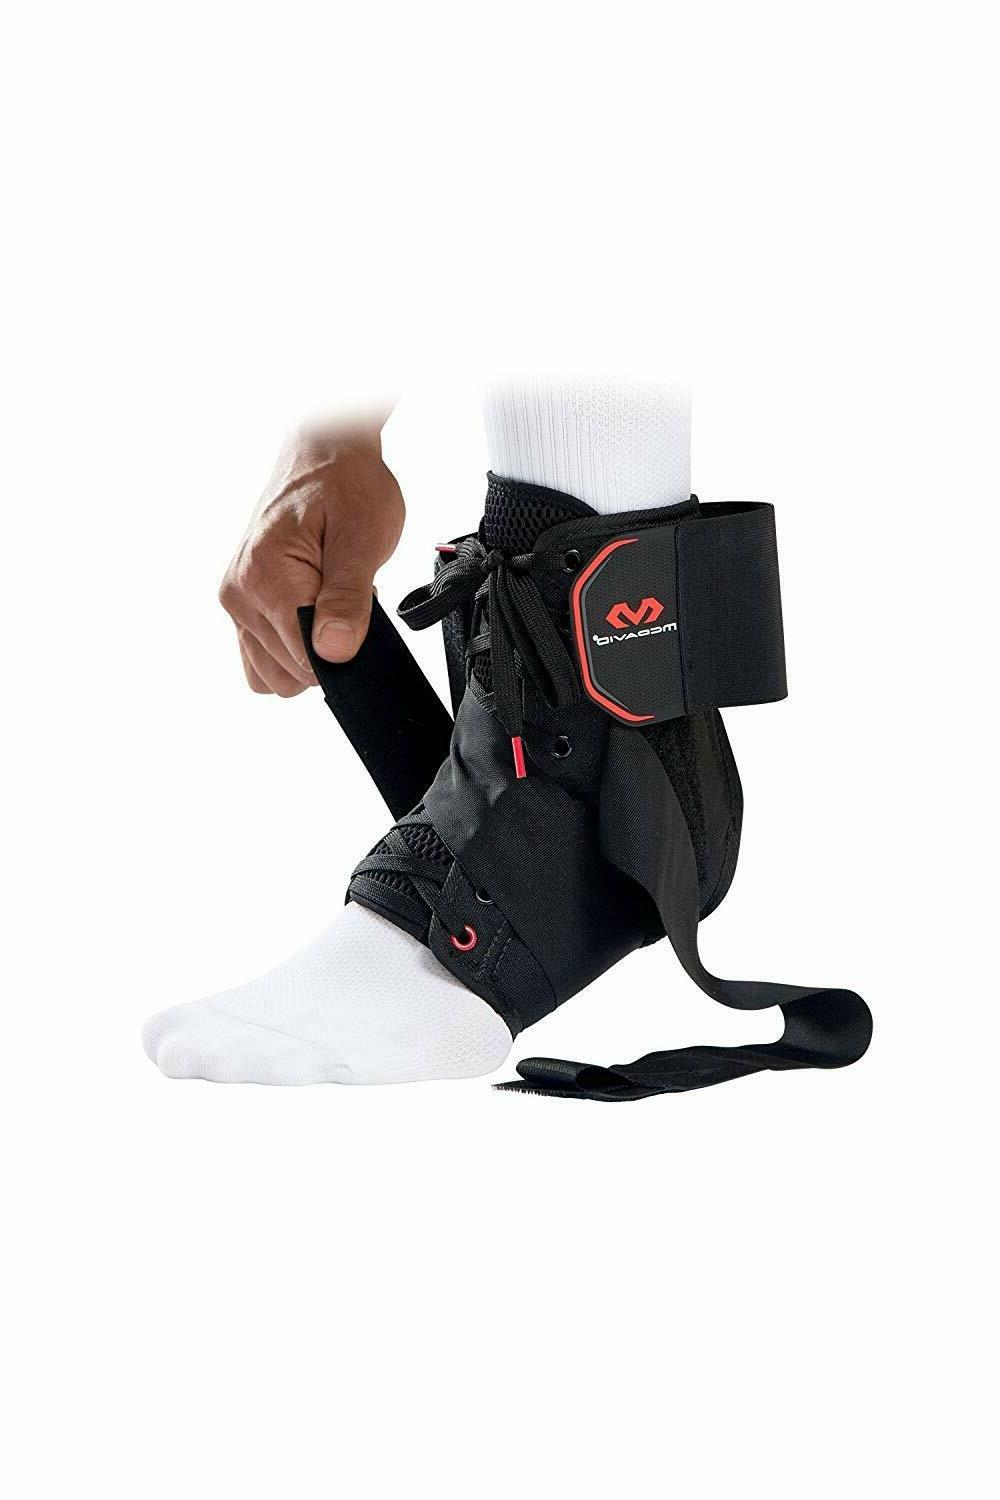 Mcdavid Ankle Support, for Ankle